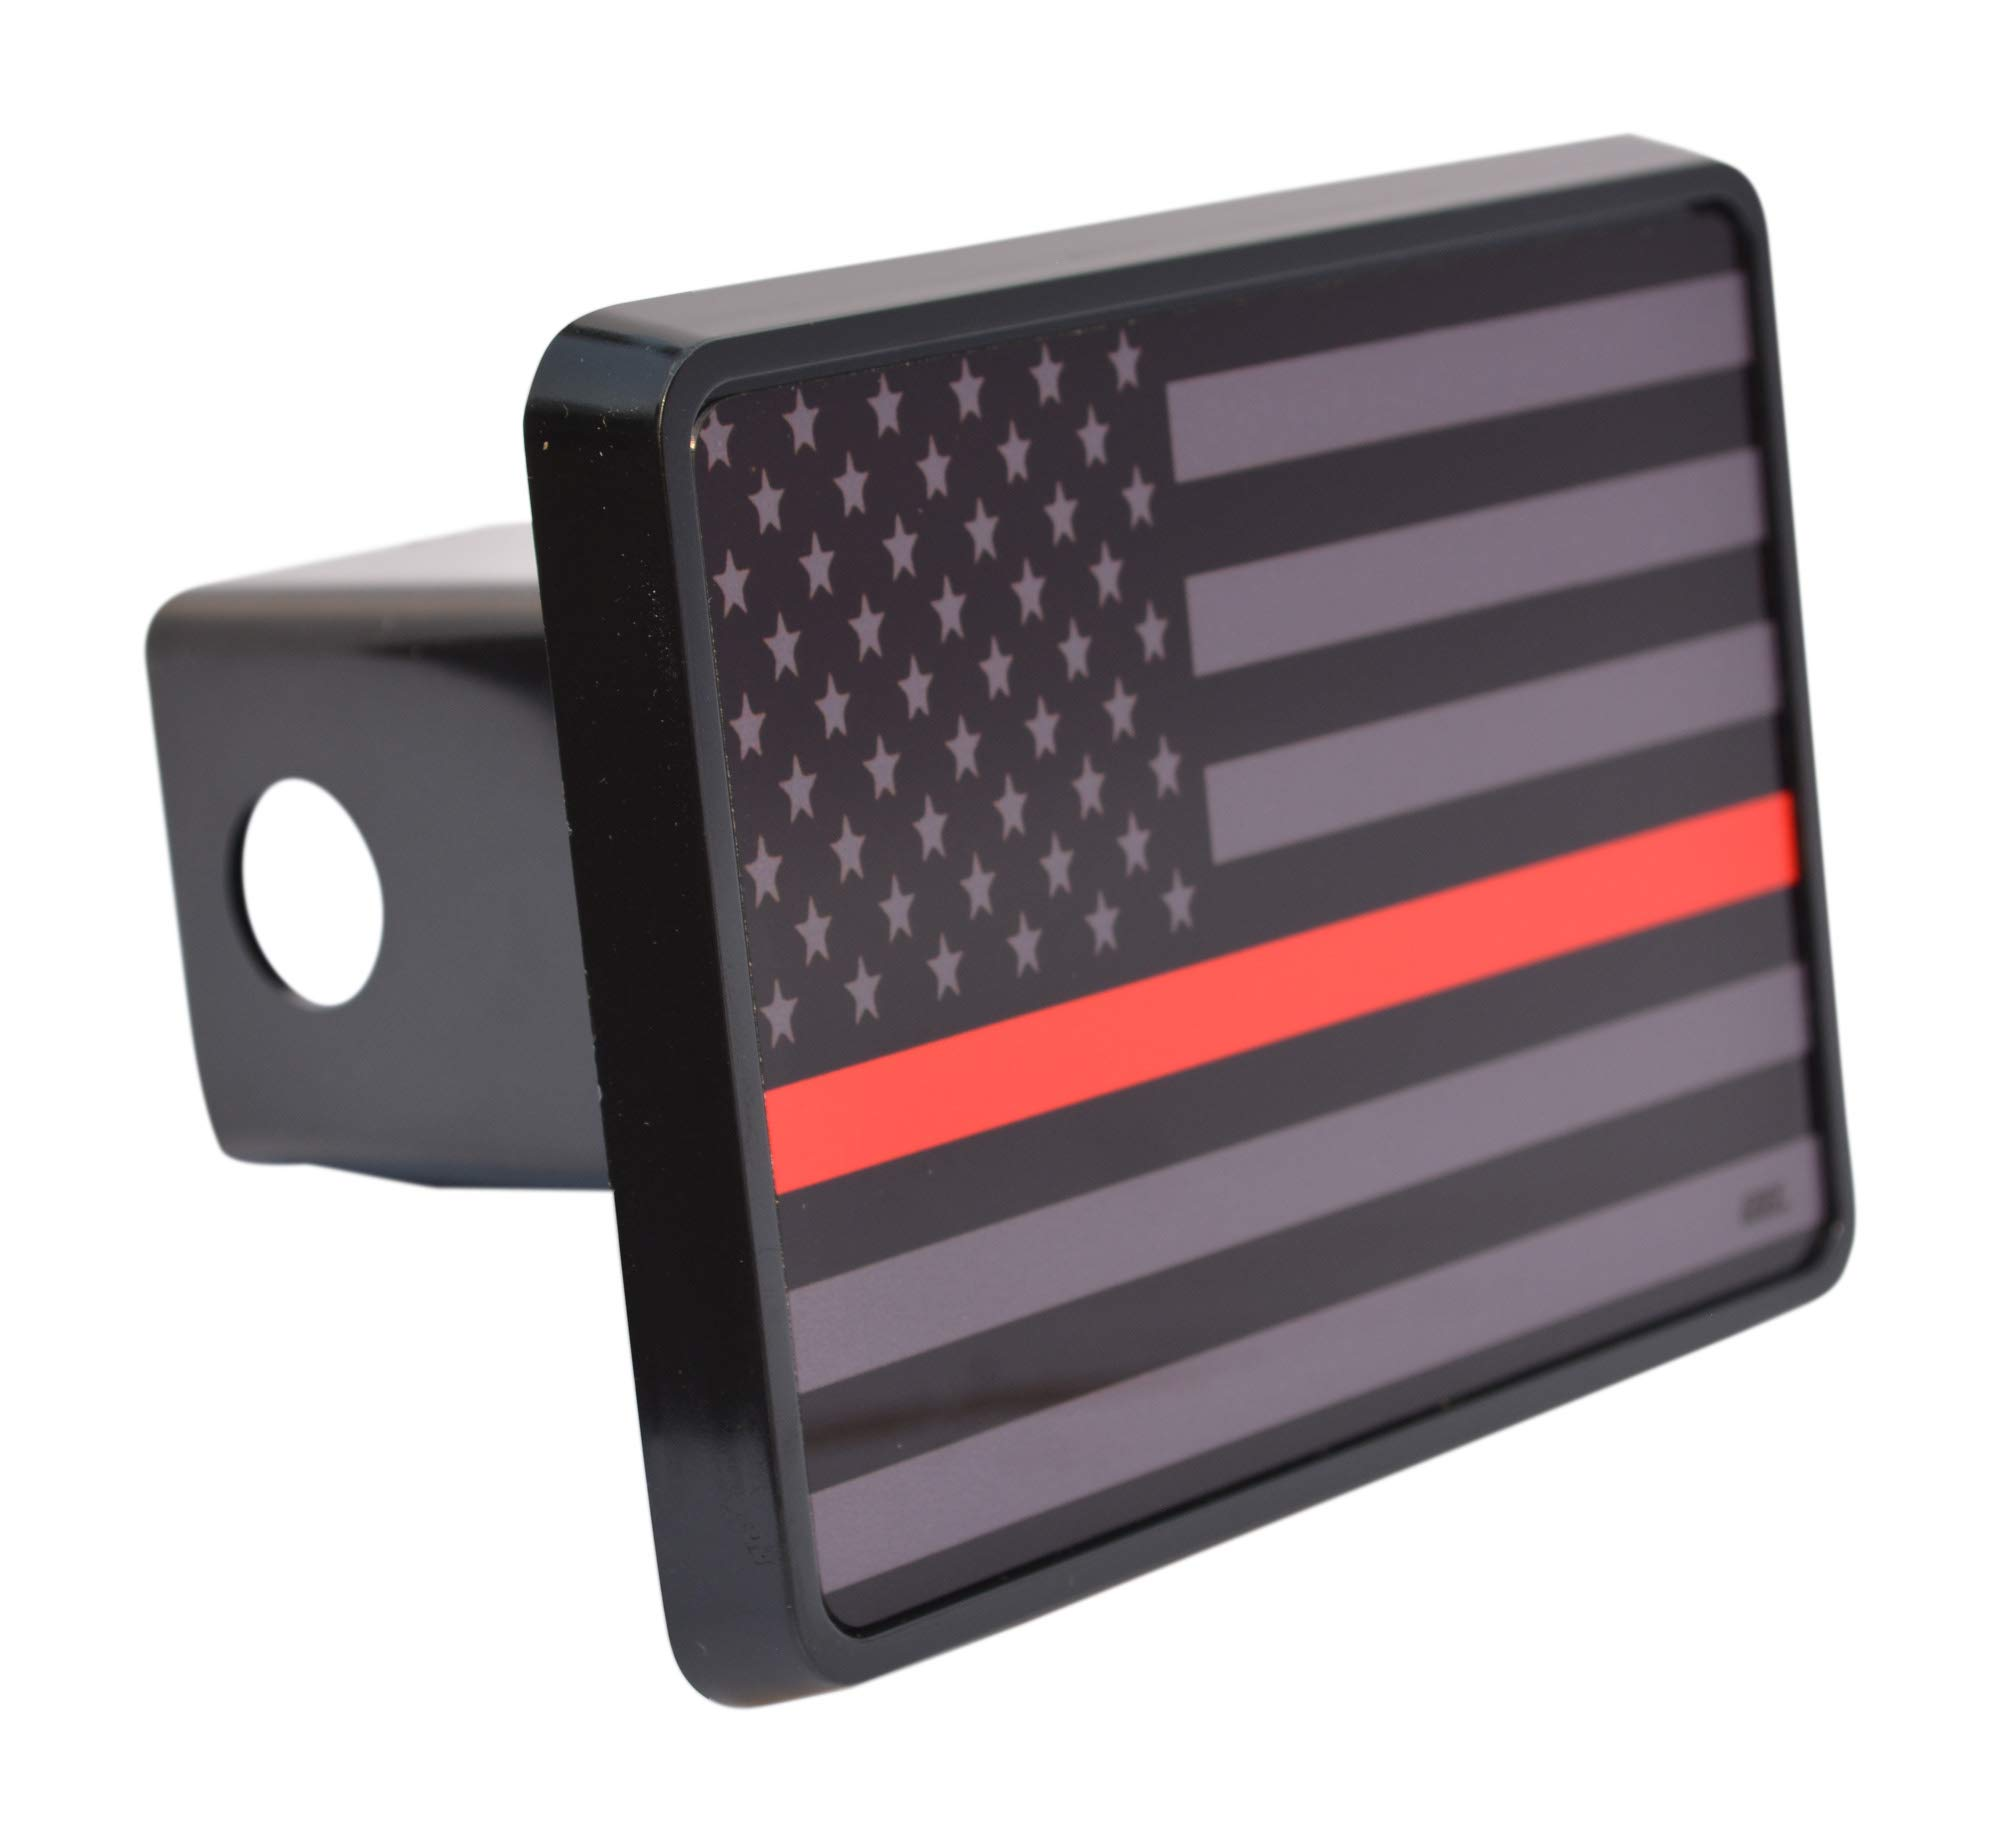 Rogue River Tactical Subdued Thin Red Line Flag Trailer Hitch Cover Plug US Firefighter Fire Fighter Truck Department FD by Rogue River Tactical